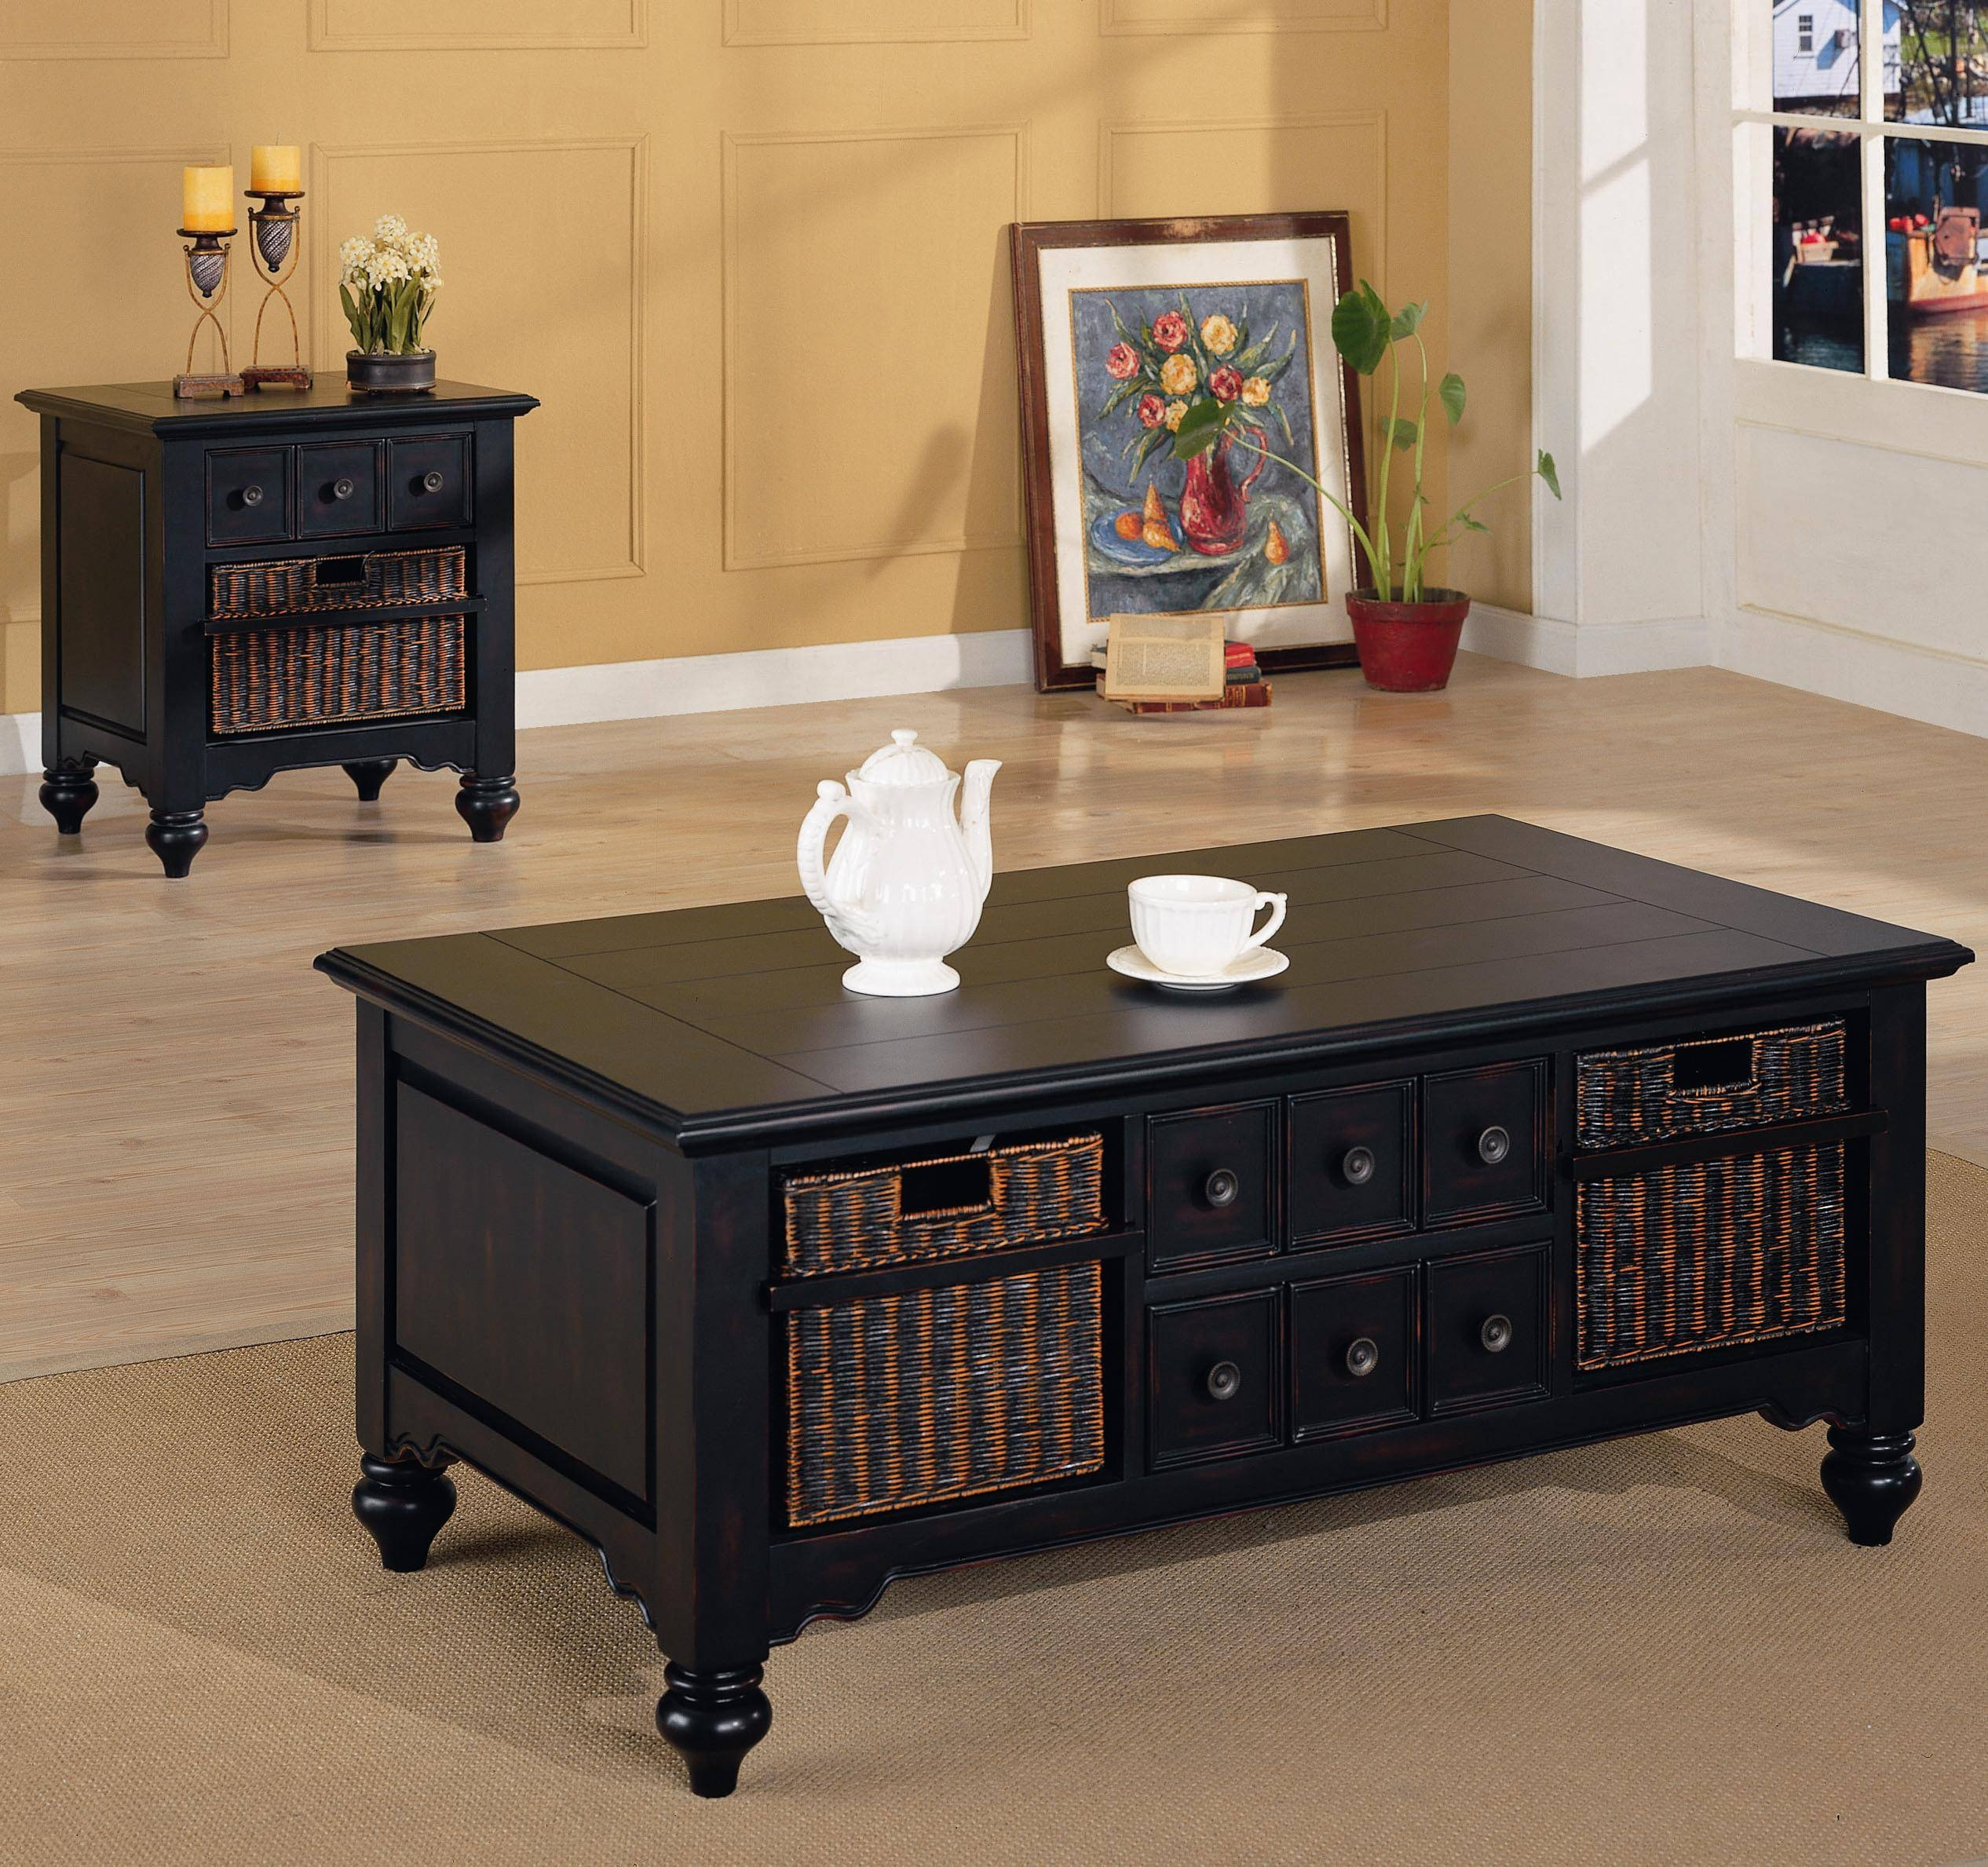 Black Round End Table With Drawer - Starrkingschool for Small Coffee Tables With Drawer (Image 2 of 30)